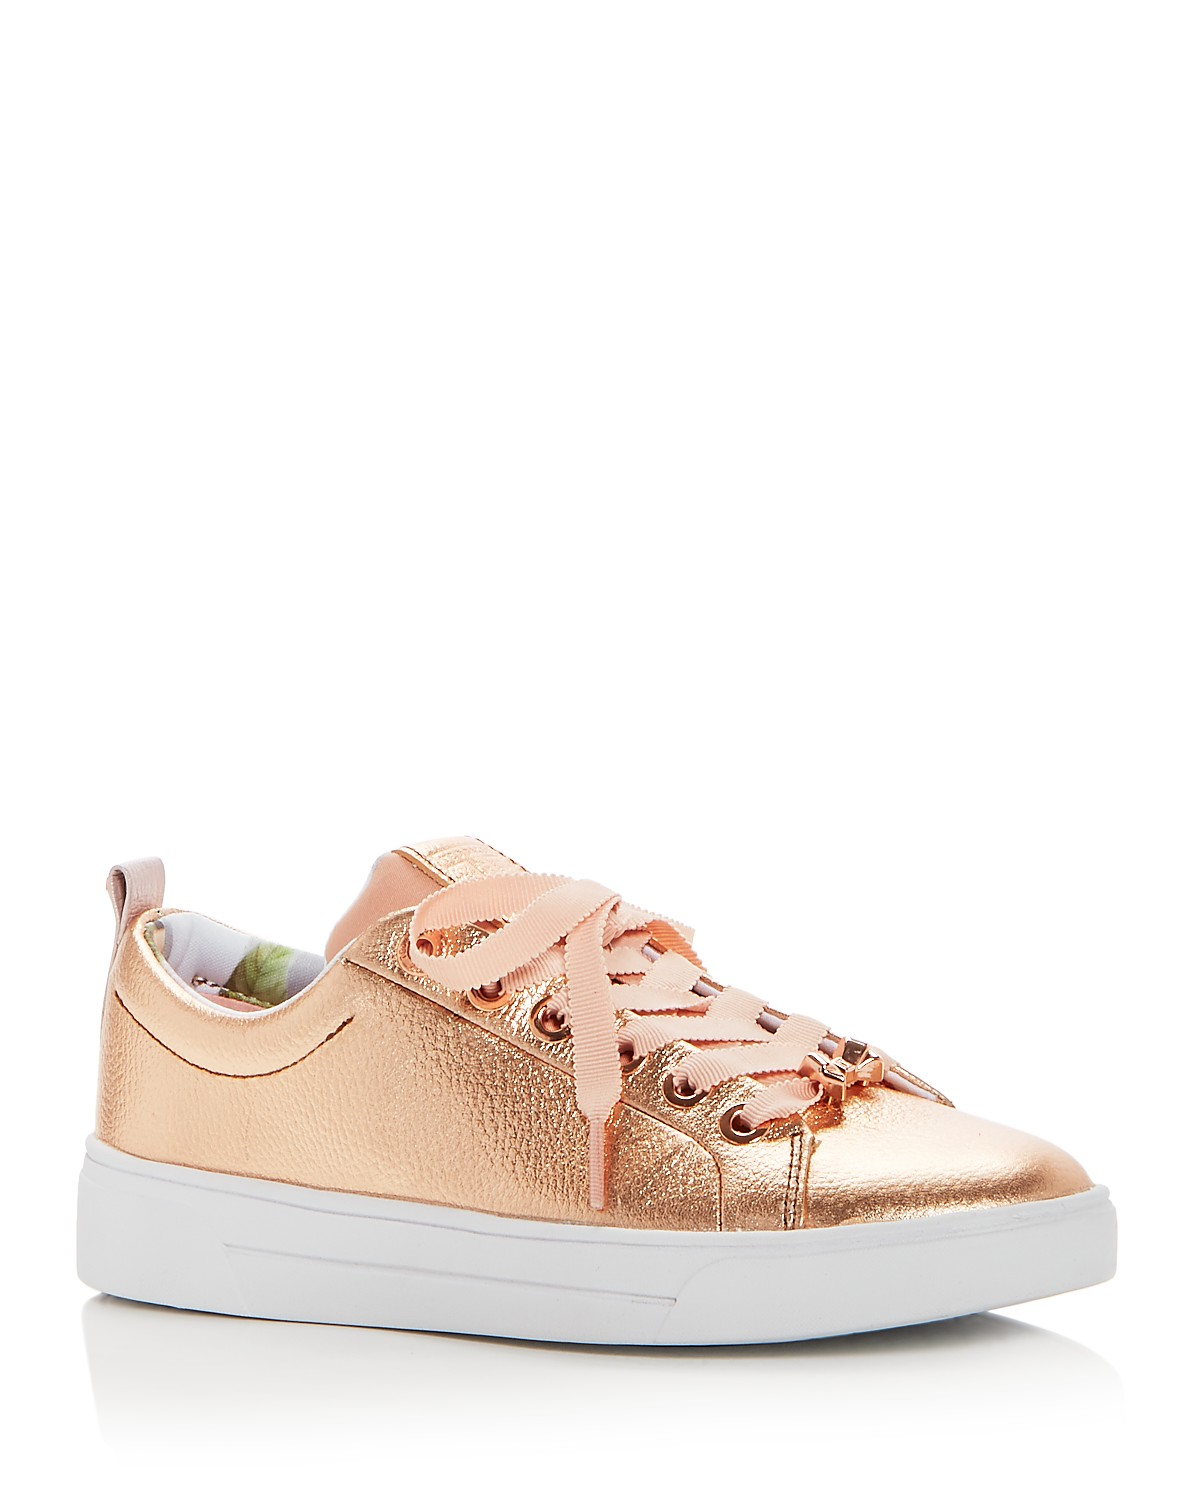 Ted Baker Women's Kellei Leather Lace Up Sneakers ZCpqYv9